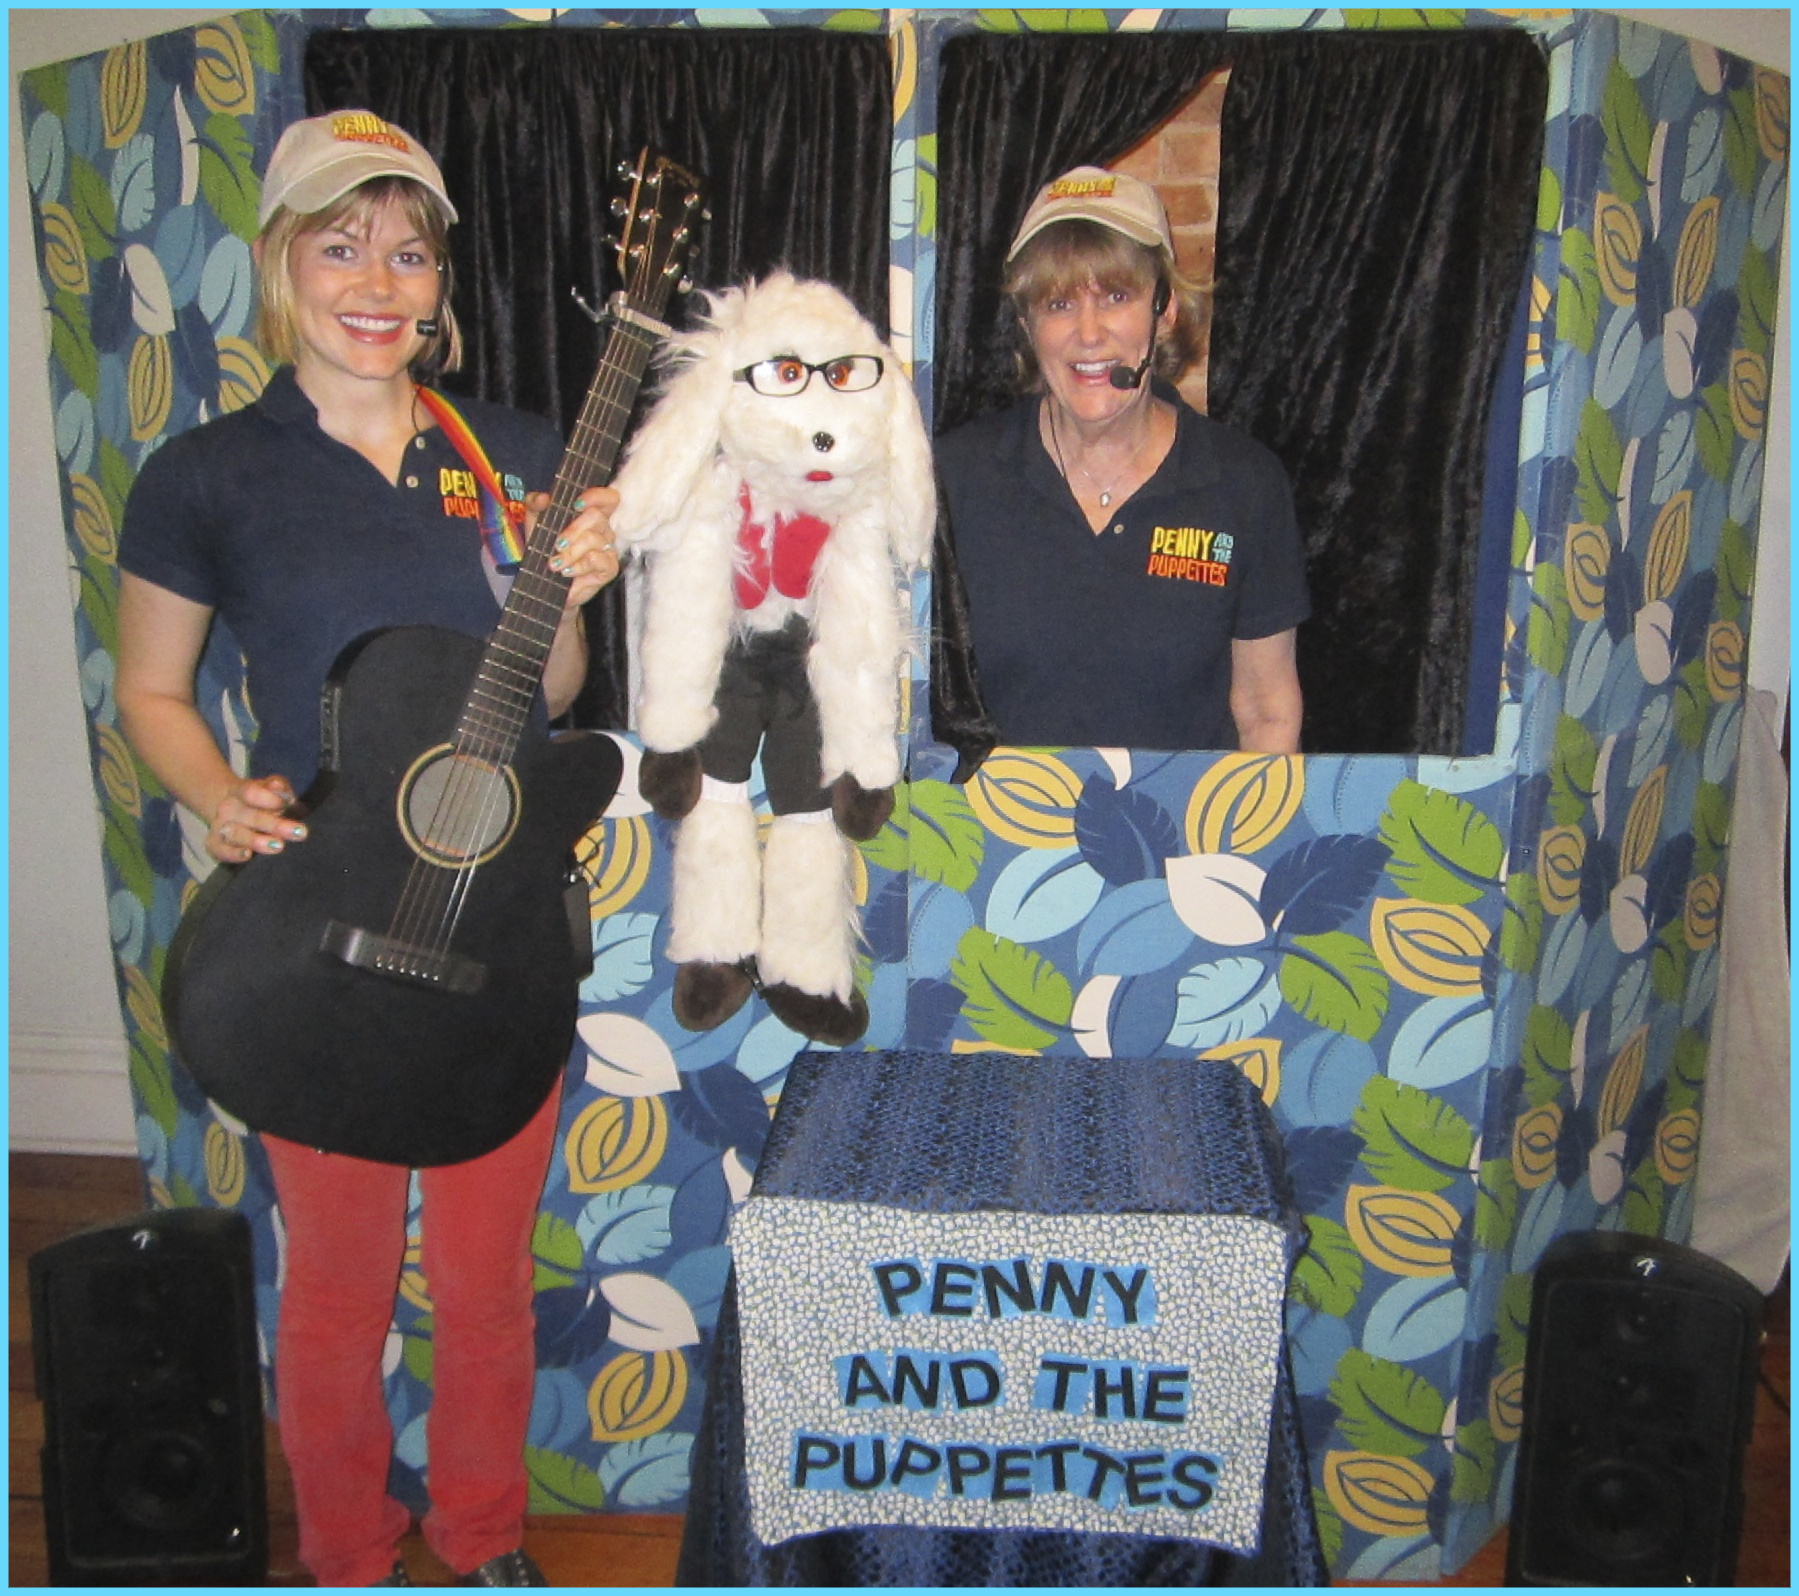 Classic Show set up with Two Performers